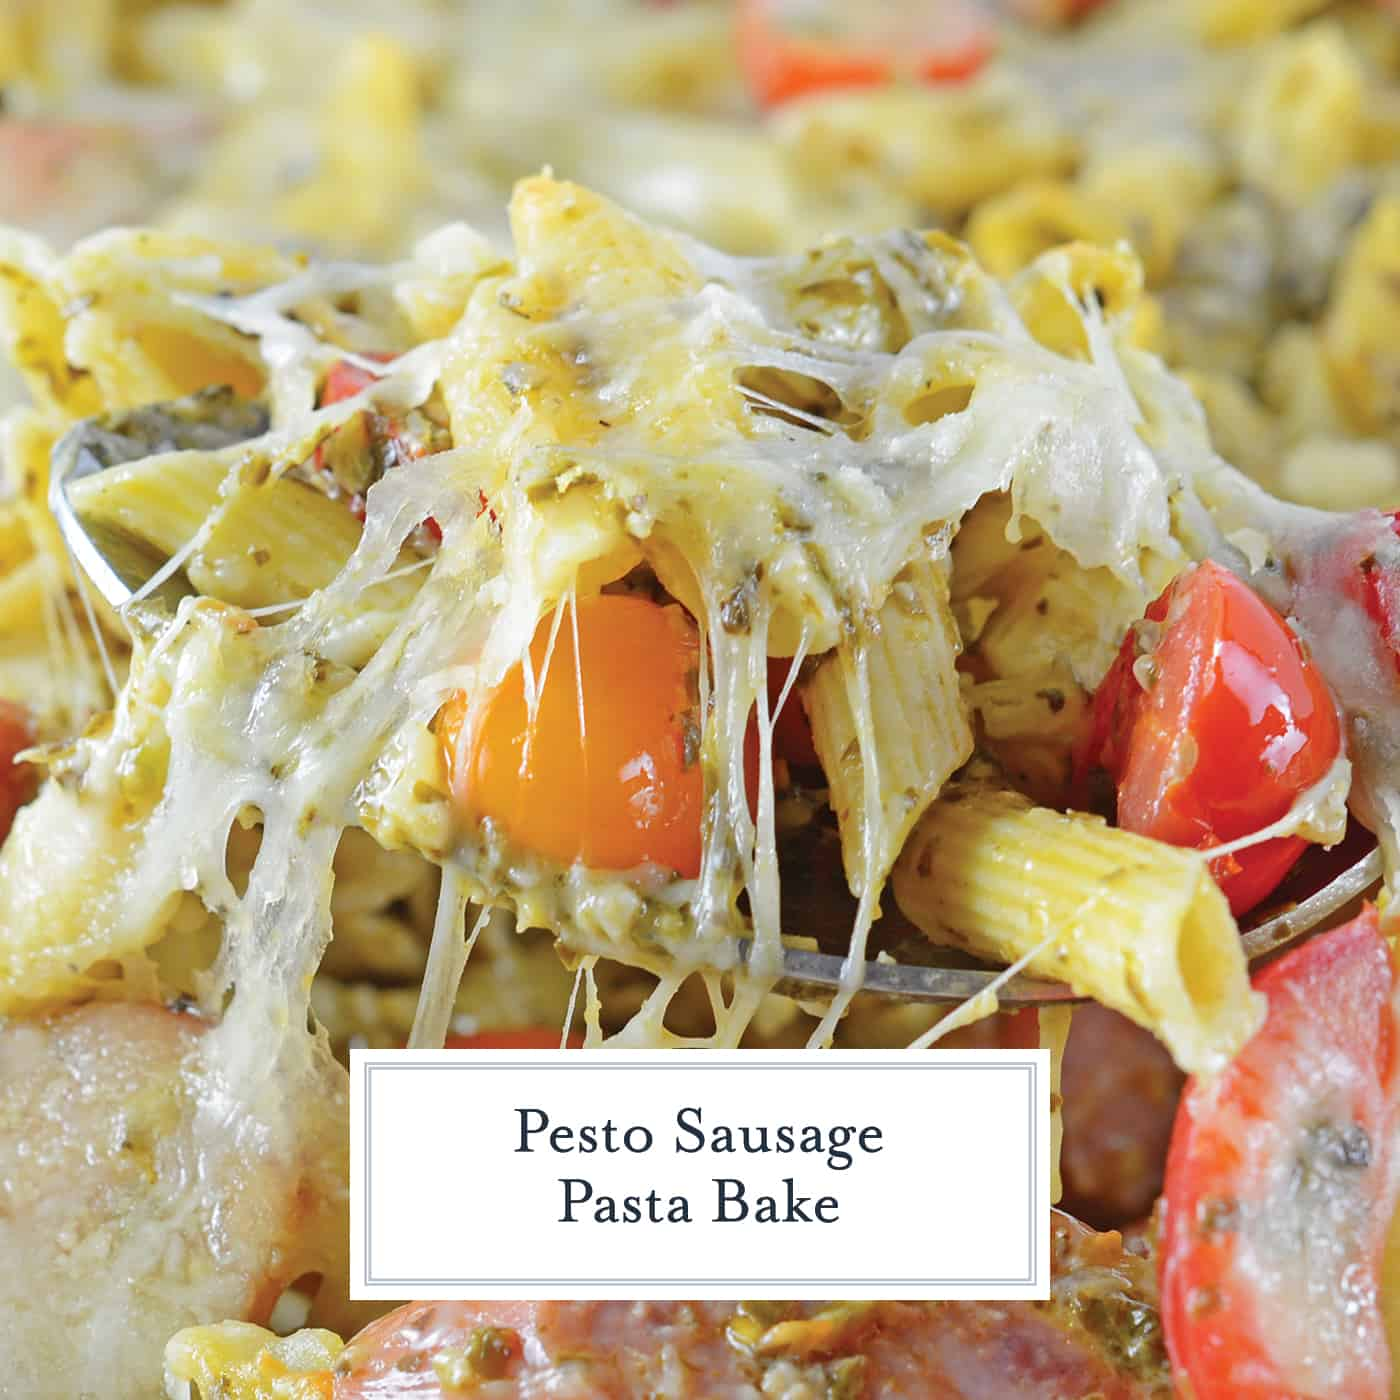 Pesto Sausage Pasta Bake is the perfect easy pasta dish! Creamy pesto sauce, pasta, smoked sausage and Italian cheese make this the ideal meal! #pastabake #bakedpastadishes #sausagepastabake www.savoryexperiments.com